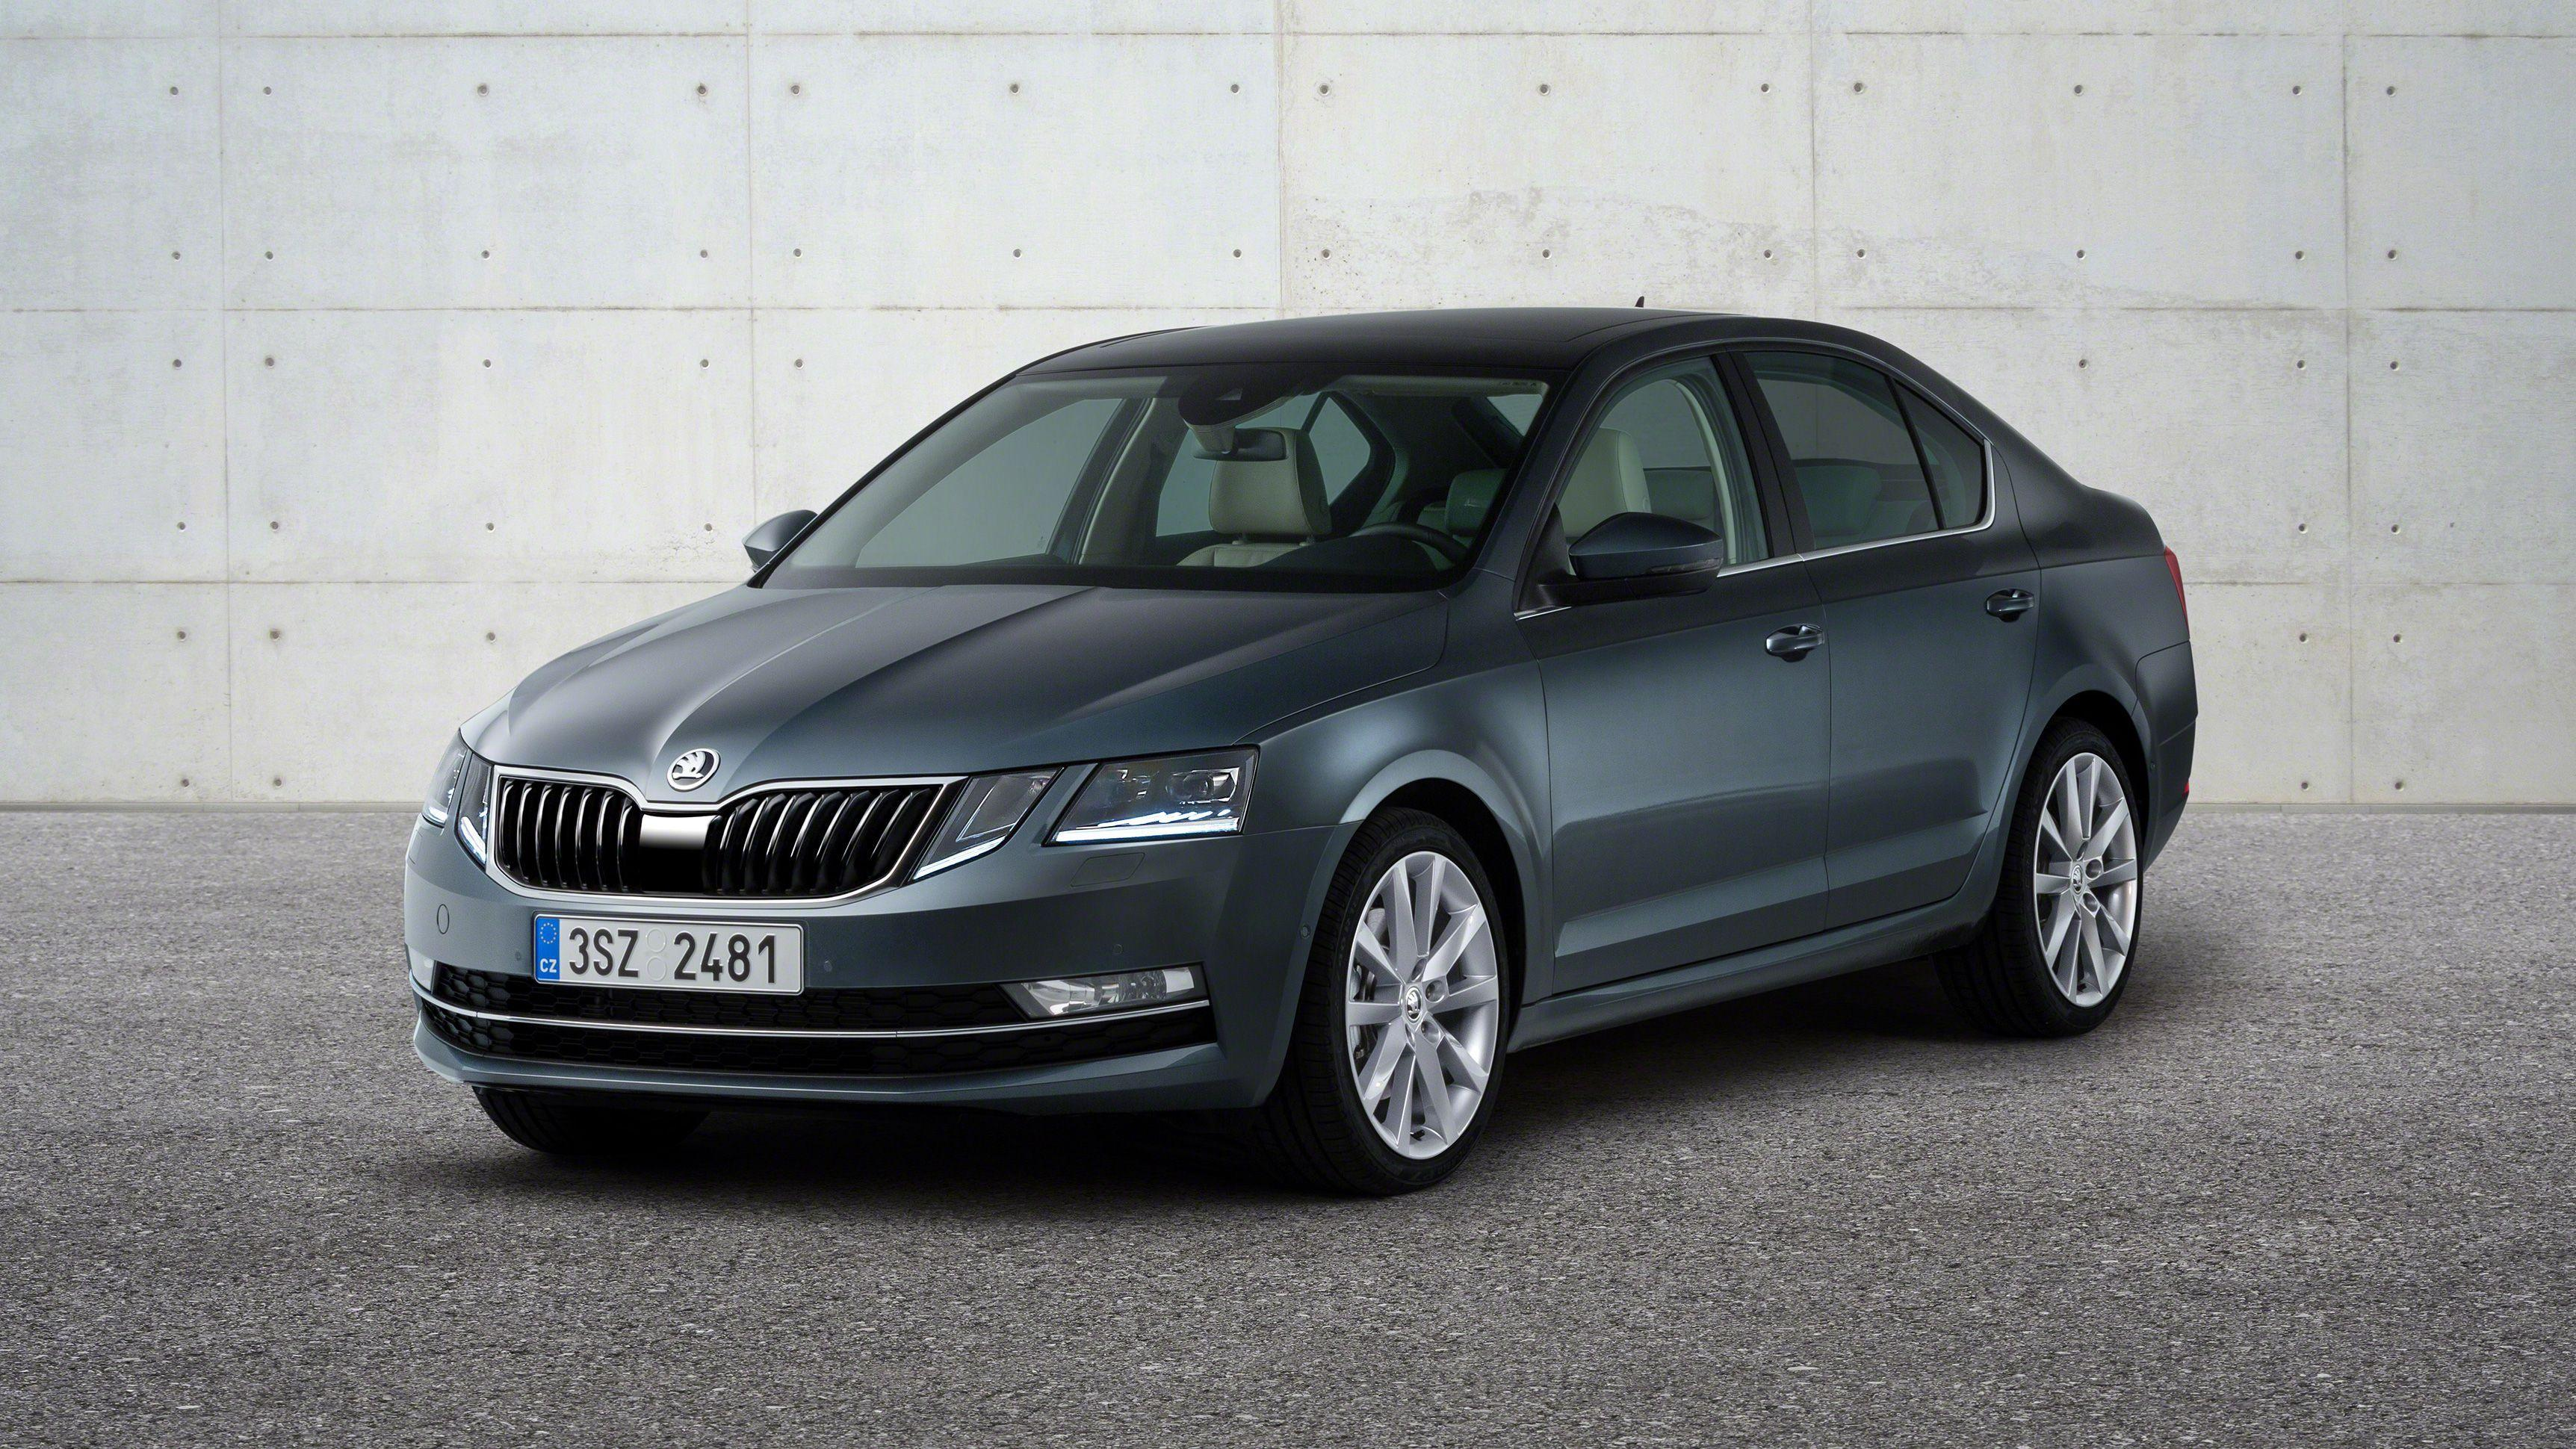 2017 Skoda Octavia Wallpapers